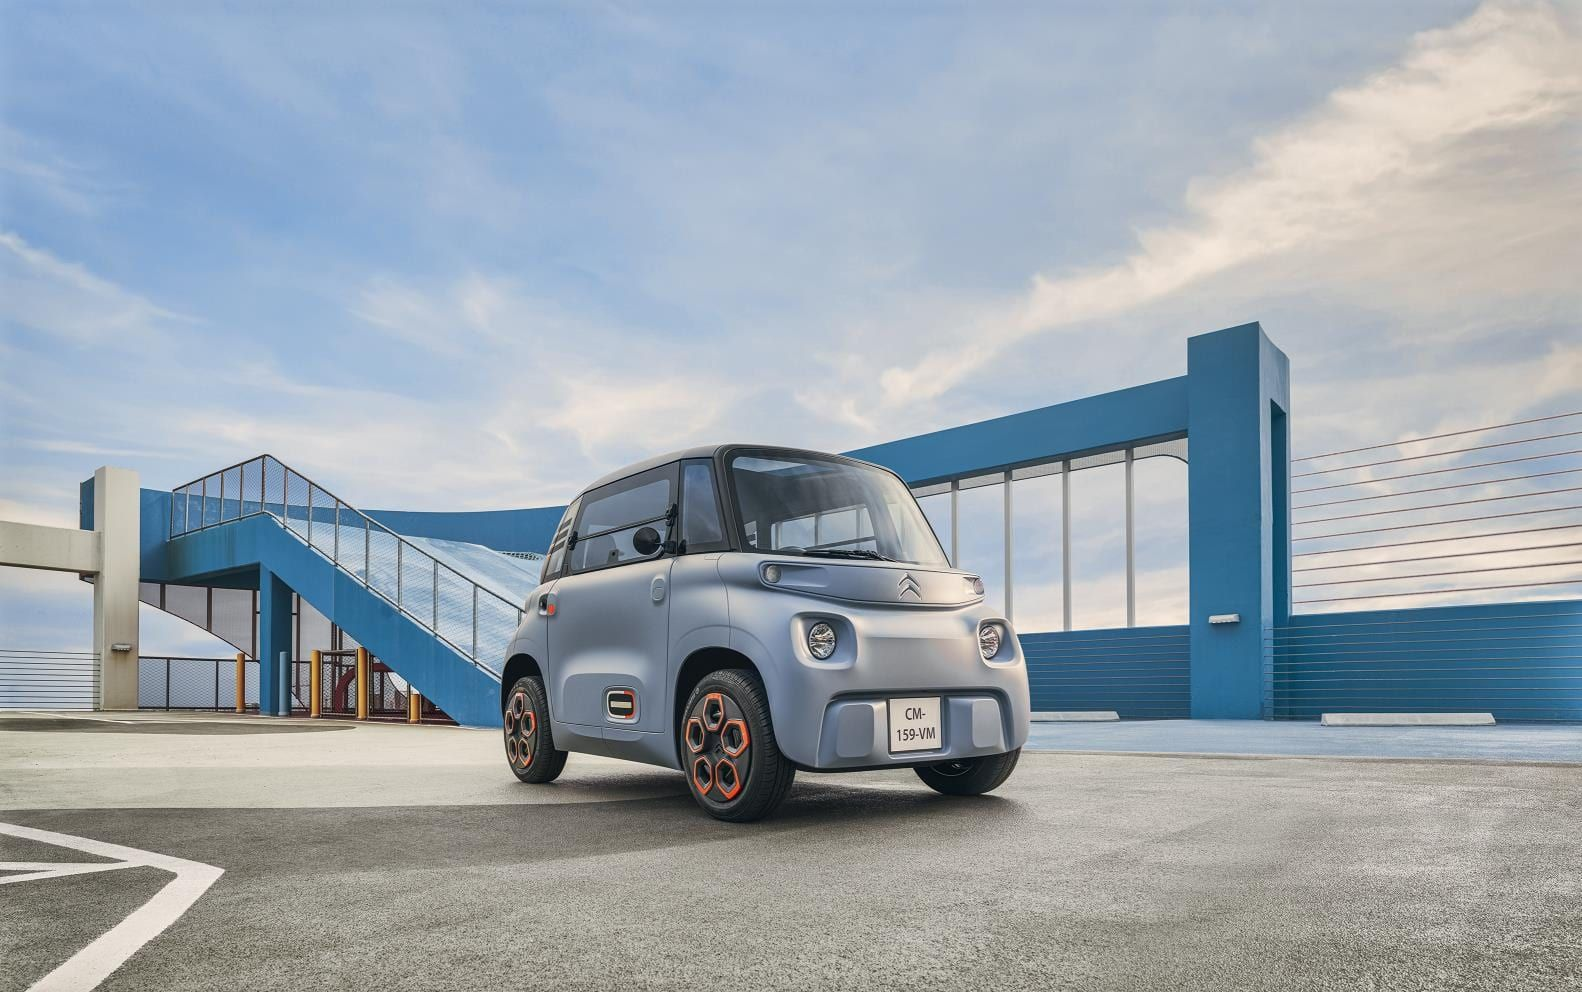 The Citroen Ami is cute two-seat city EV that will cost £17 a month